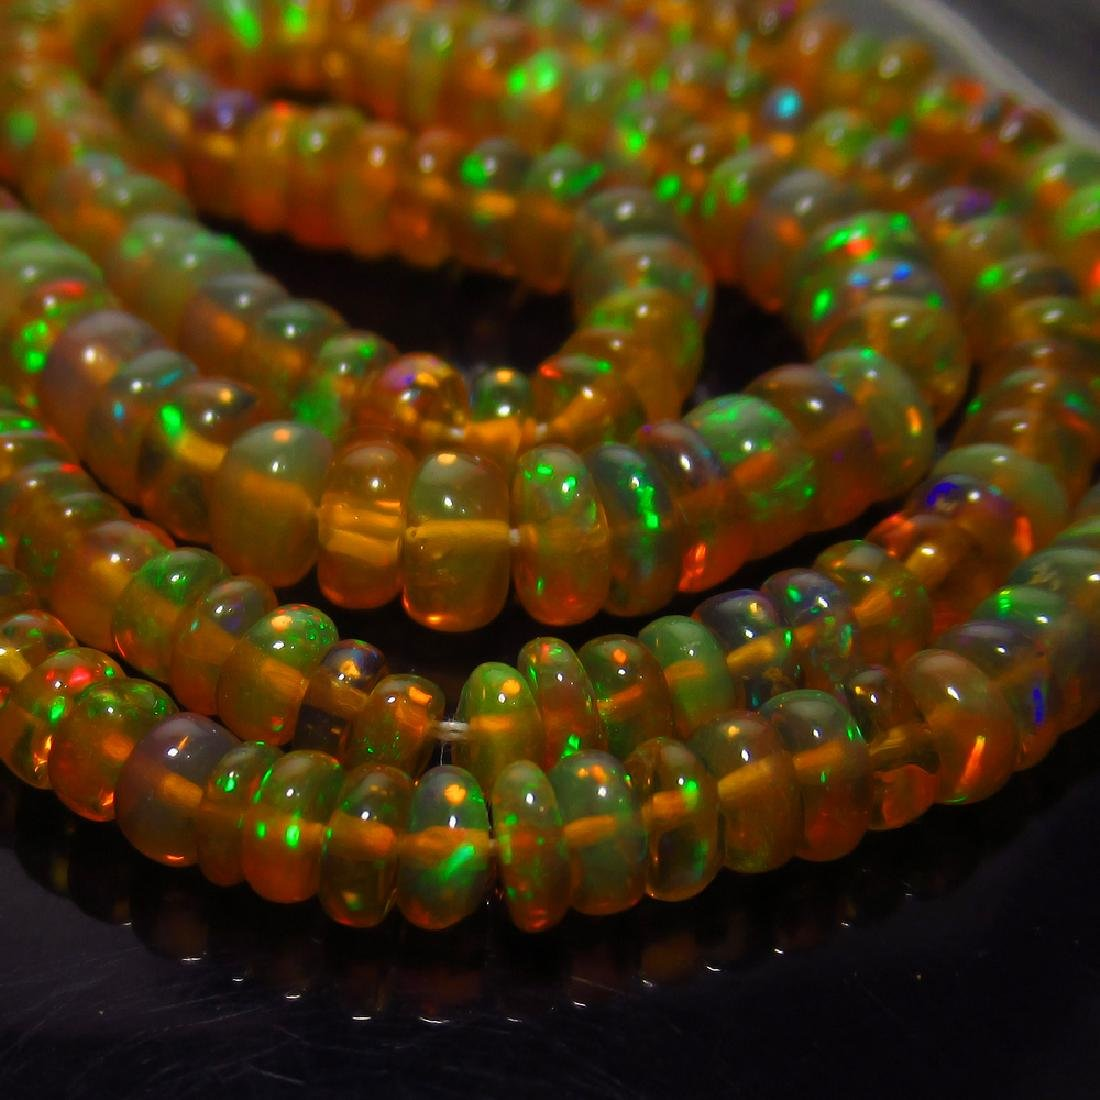 28.64 Ct Genuine 237 Drilled Opal Beads Multi-Color - 4